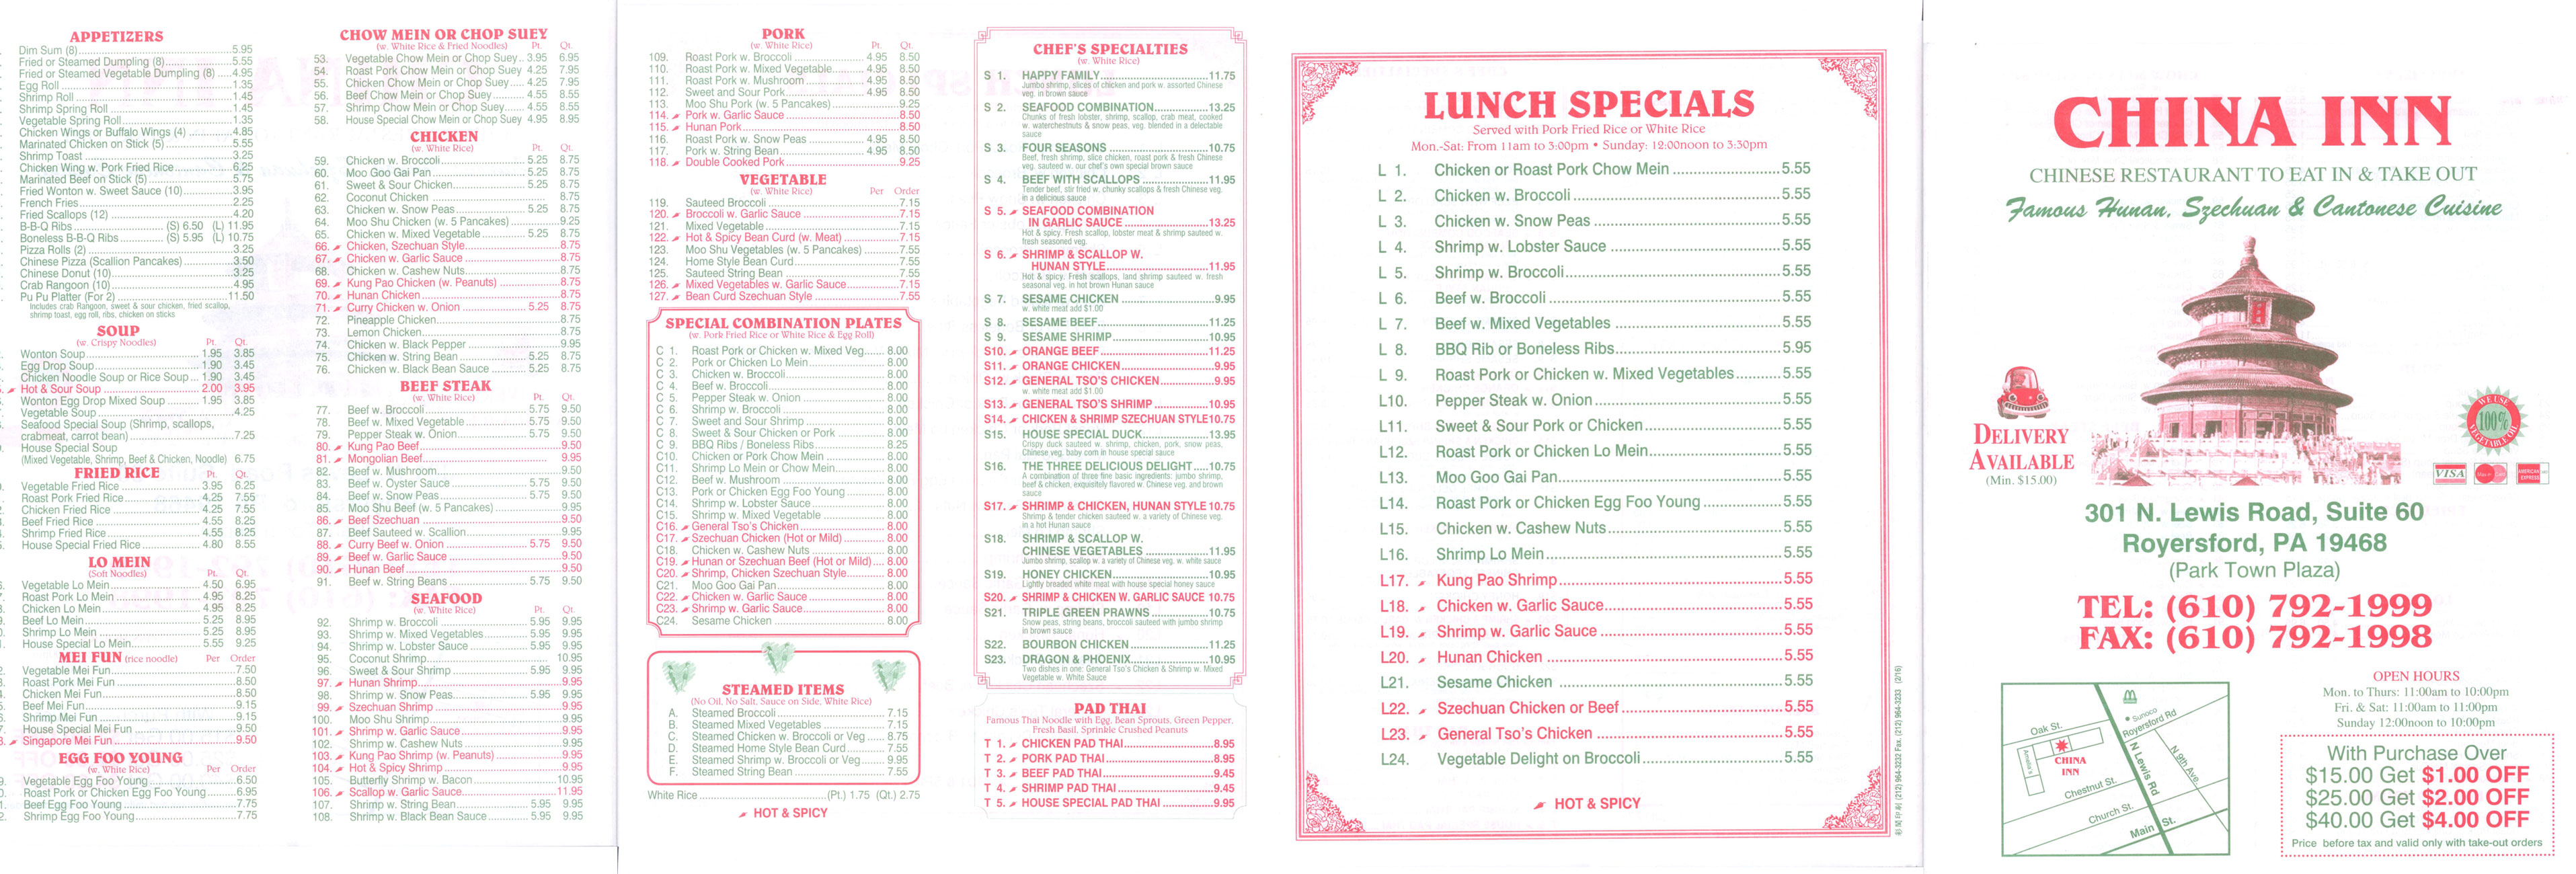 China Inn Menu